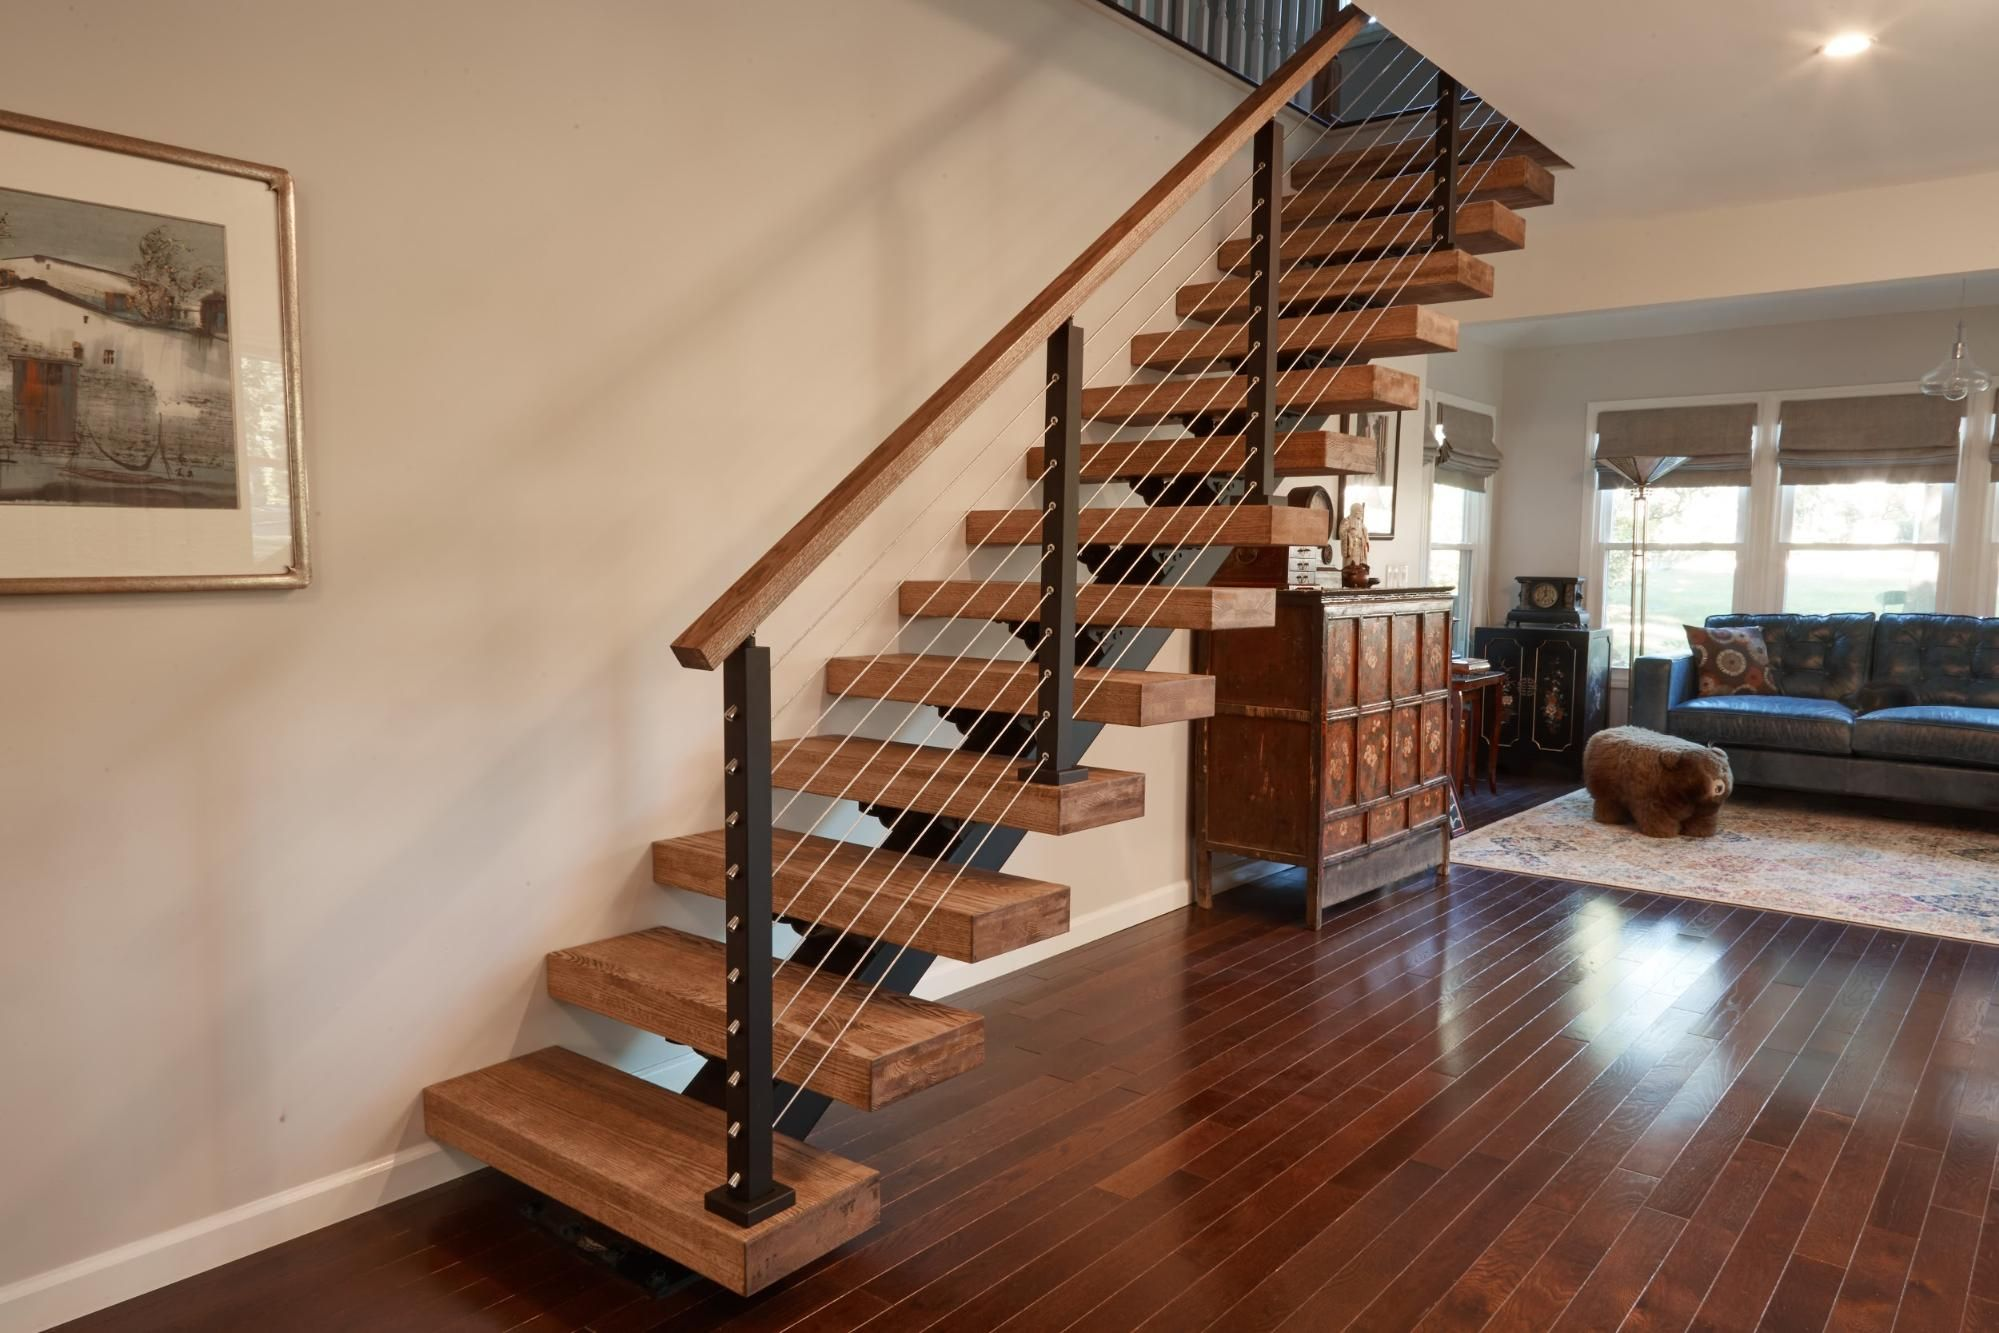 Best Floating Stair Diy Install In 2020 With Images Stairs 400 x 300